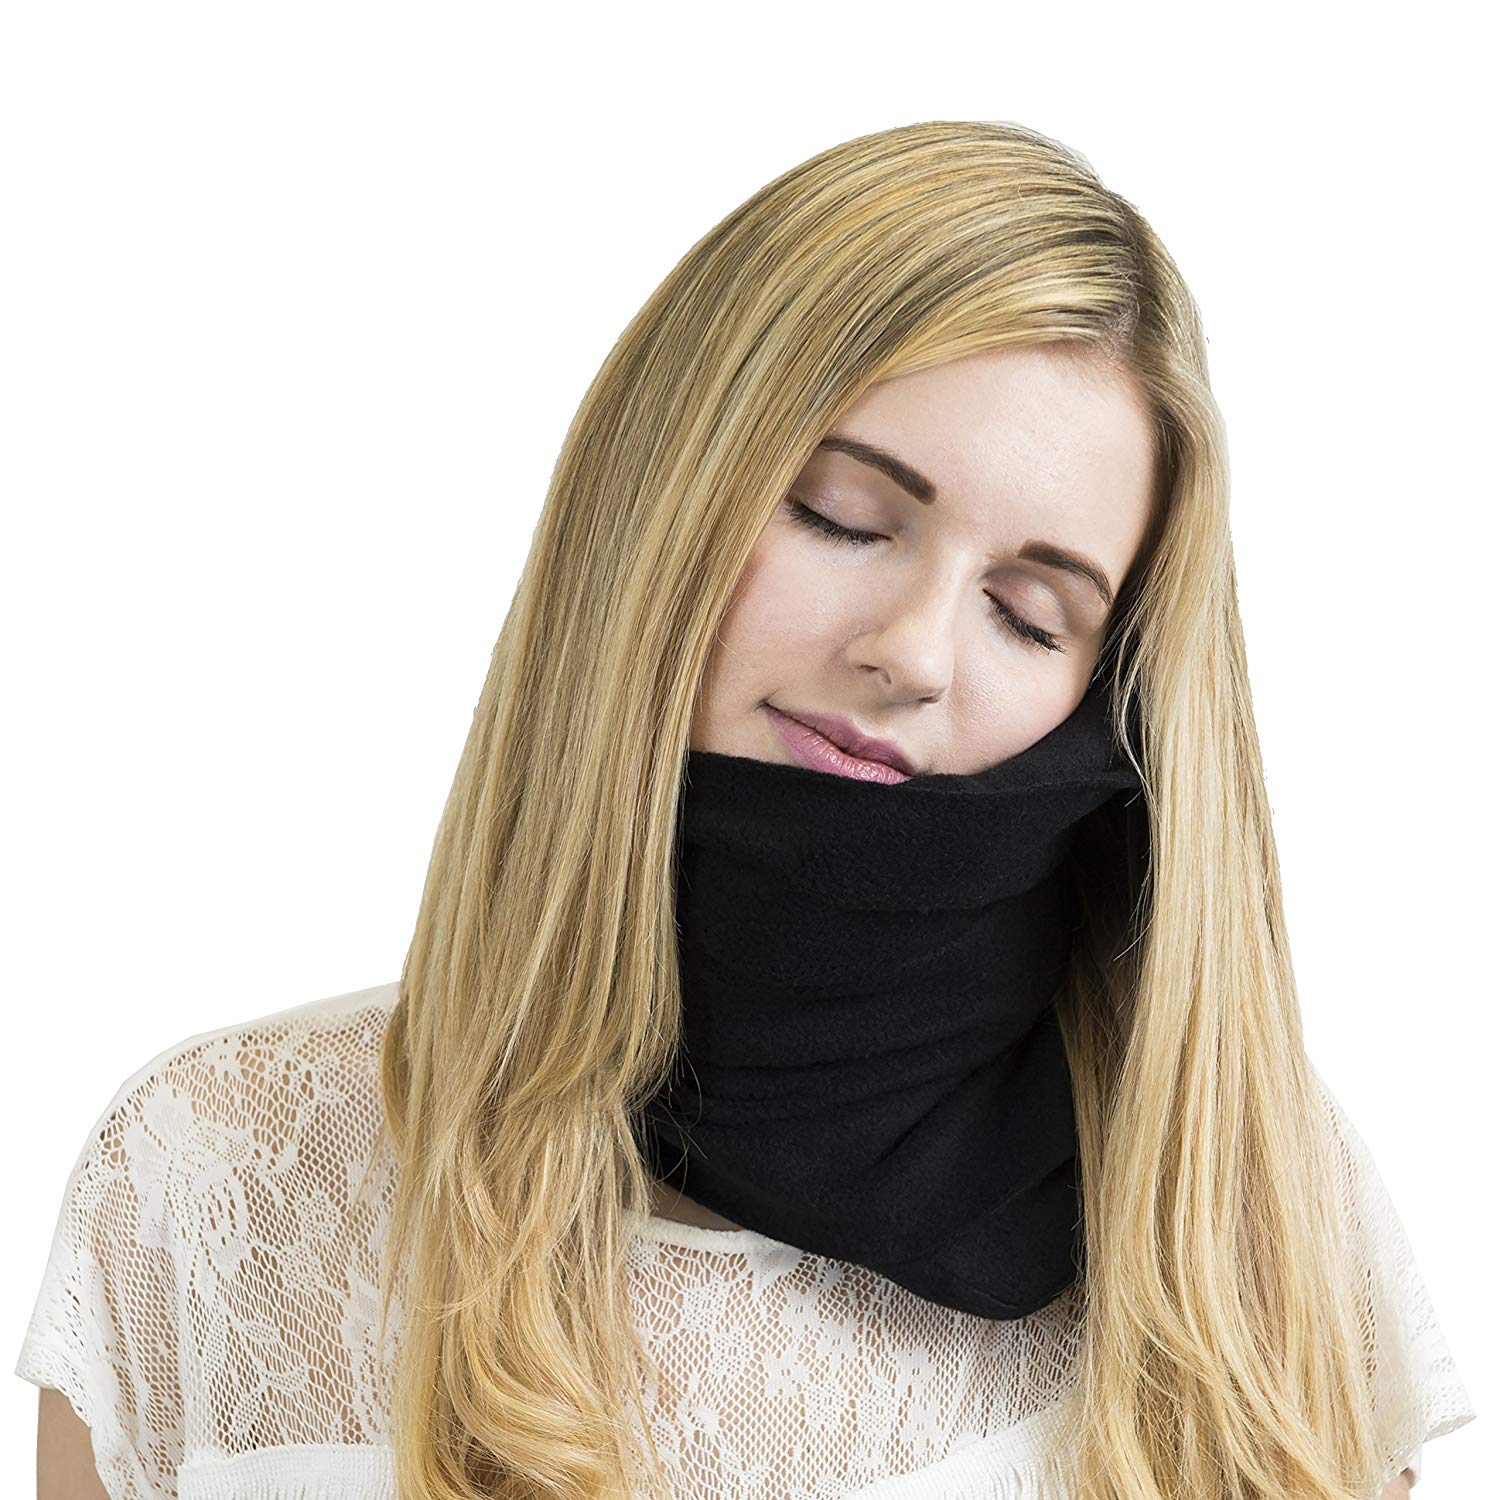 Trtl Neck Support Travel Pillow  ($30) — I know it looks horrifyingly dorky, but hear me out. This neck pillow is the only way I can sleep on flights, especially if stuck with a middle seat. I might look like a hospital patient, but at least I can nap! (It's machine washable, too.)